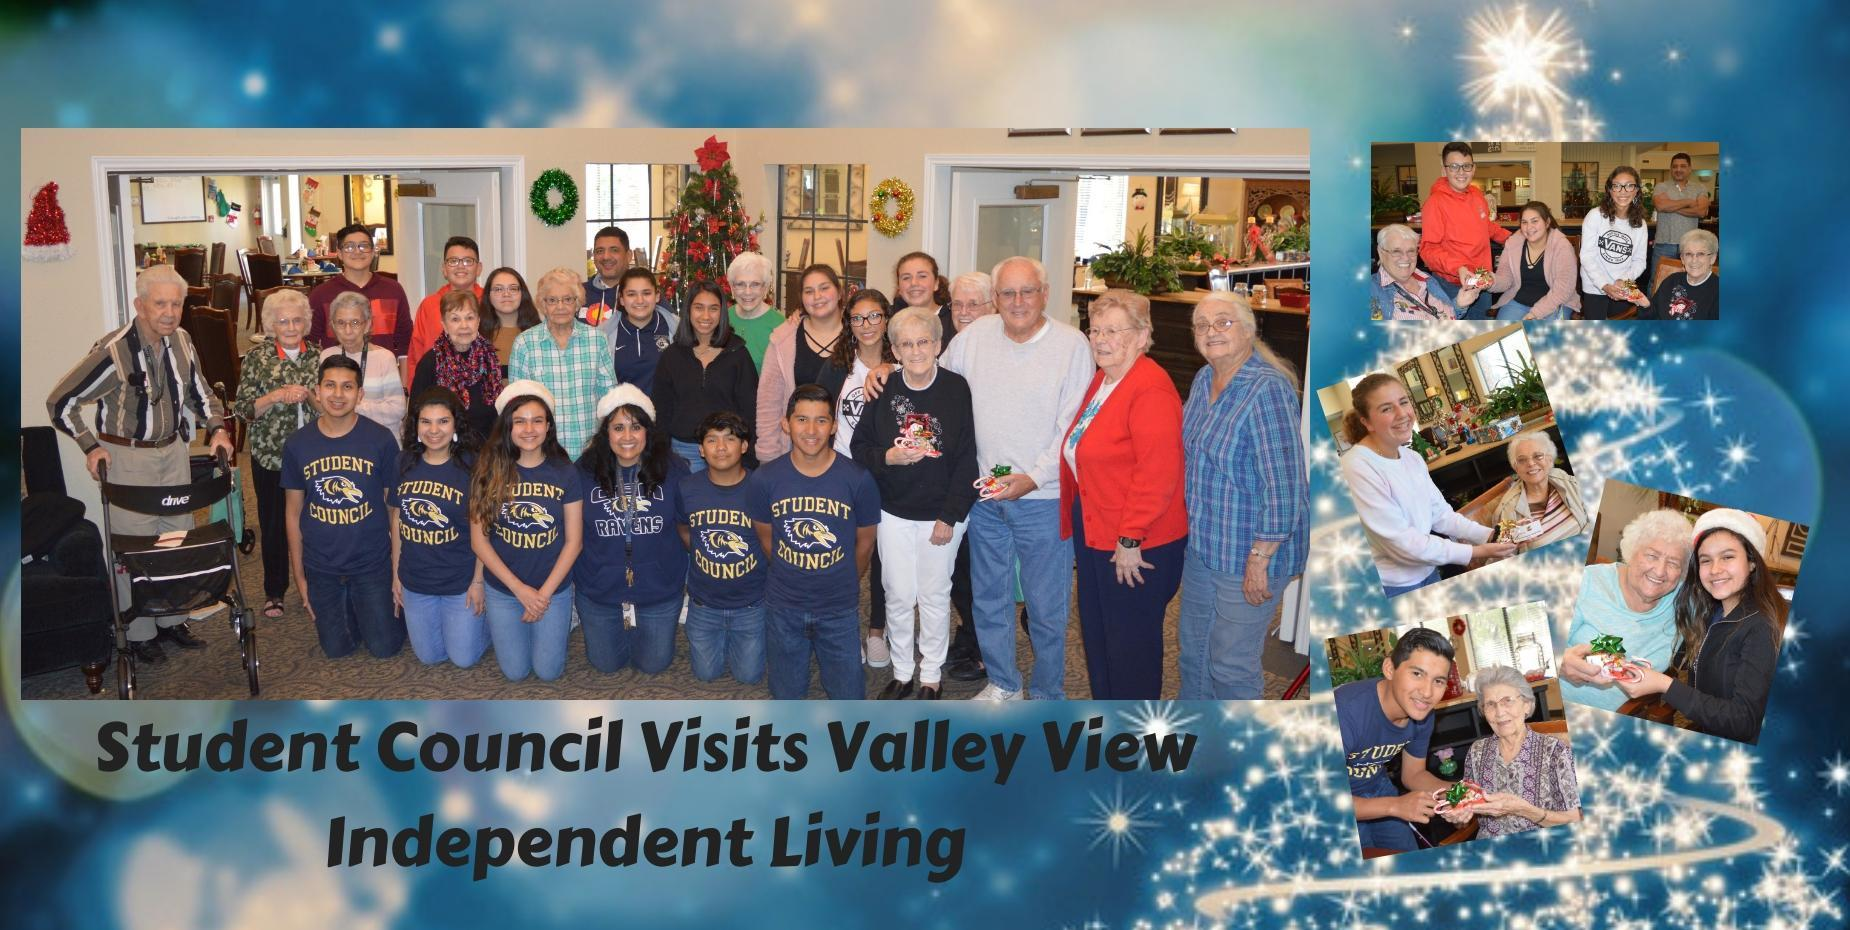 Student Council Visits Valley View Independent Living 2019